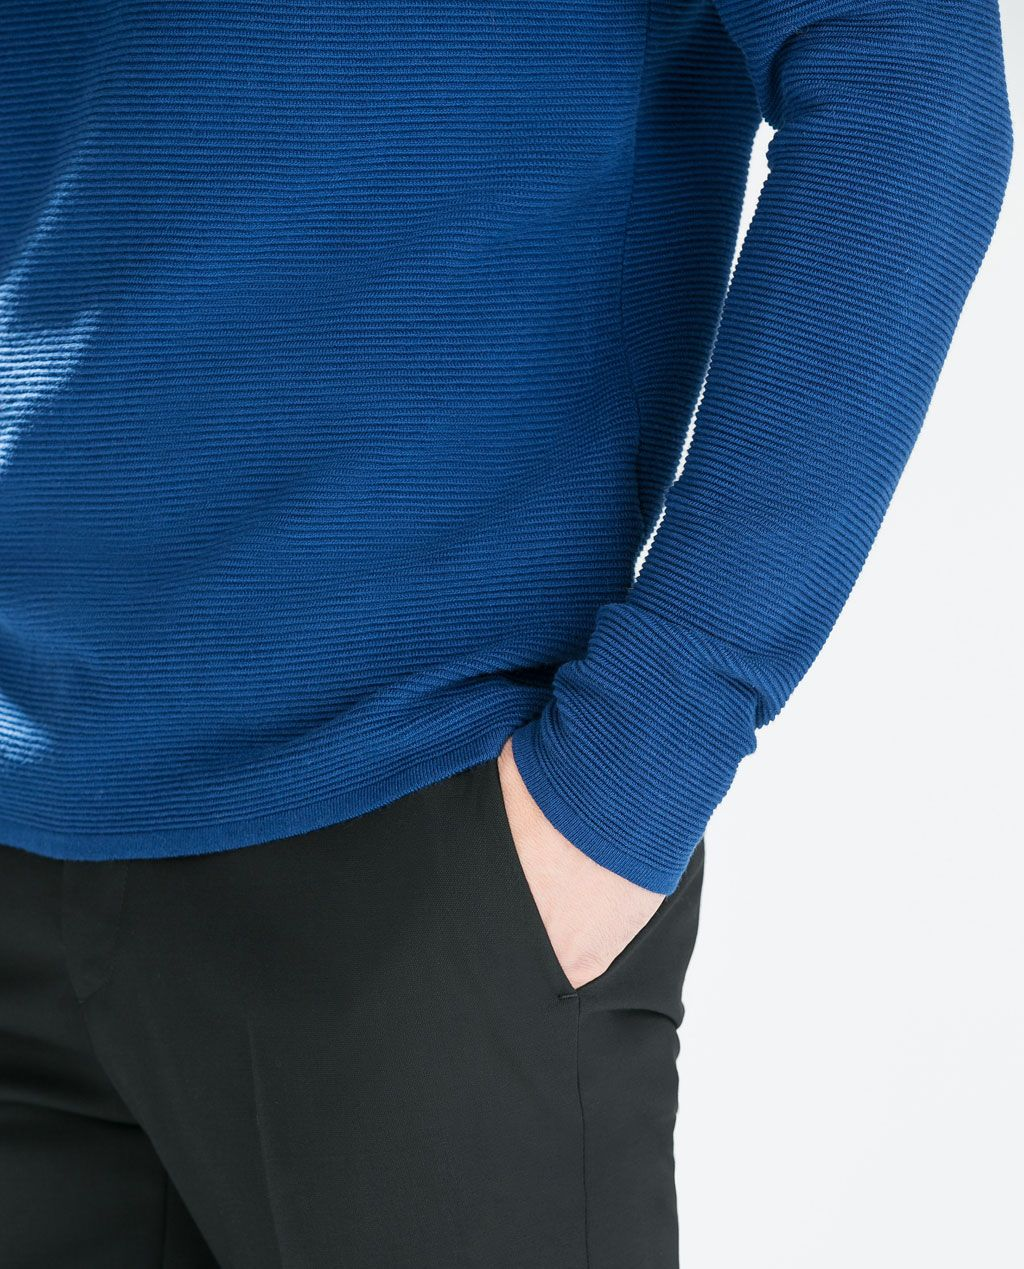 ZARA - MAN - COLORED STRUCTURED SWEATER